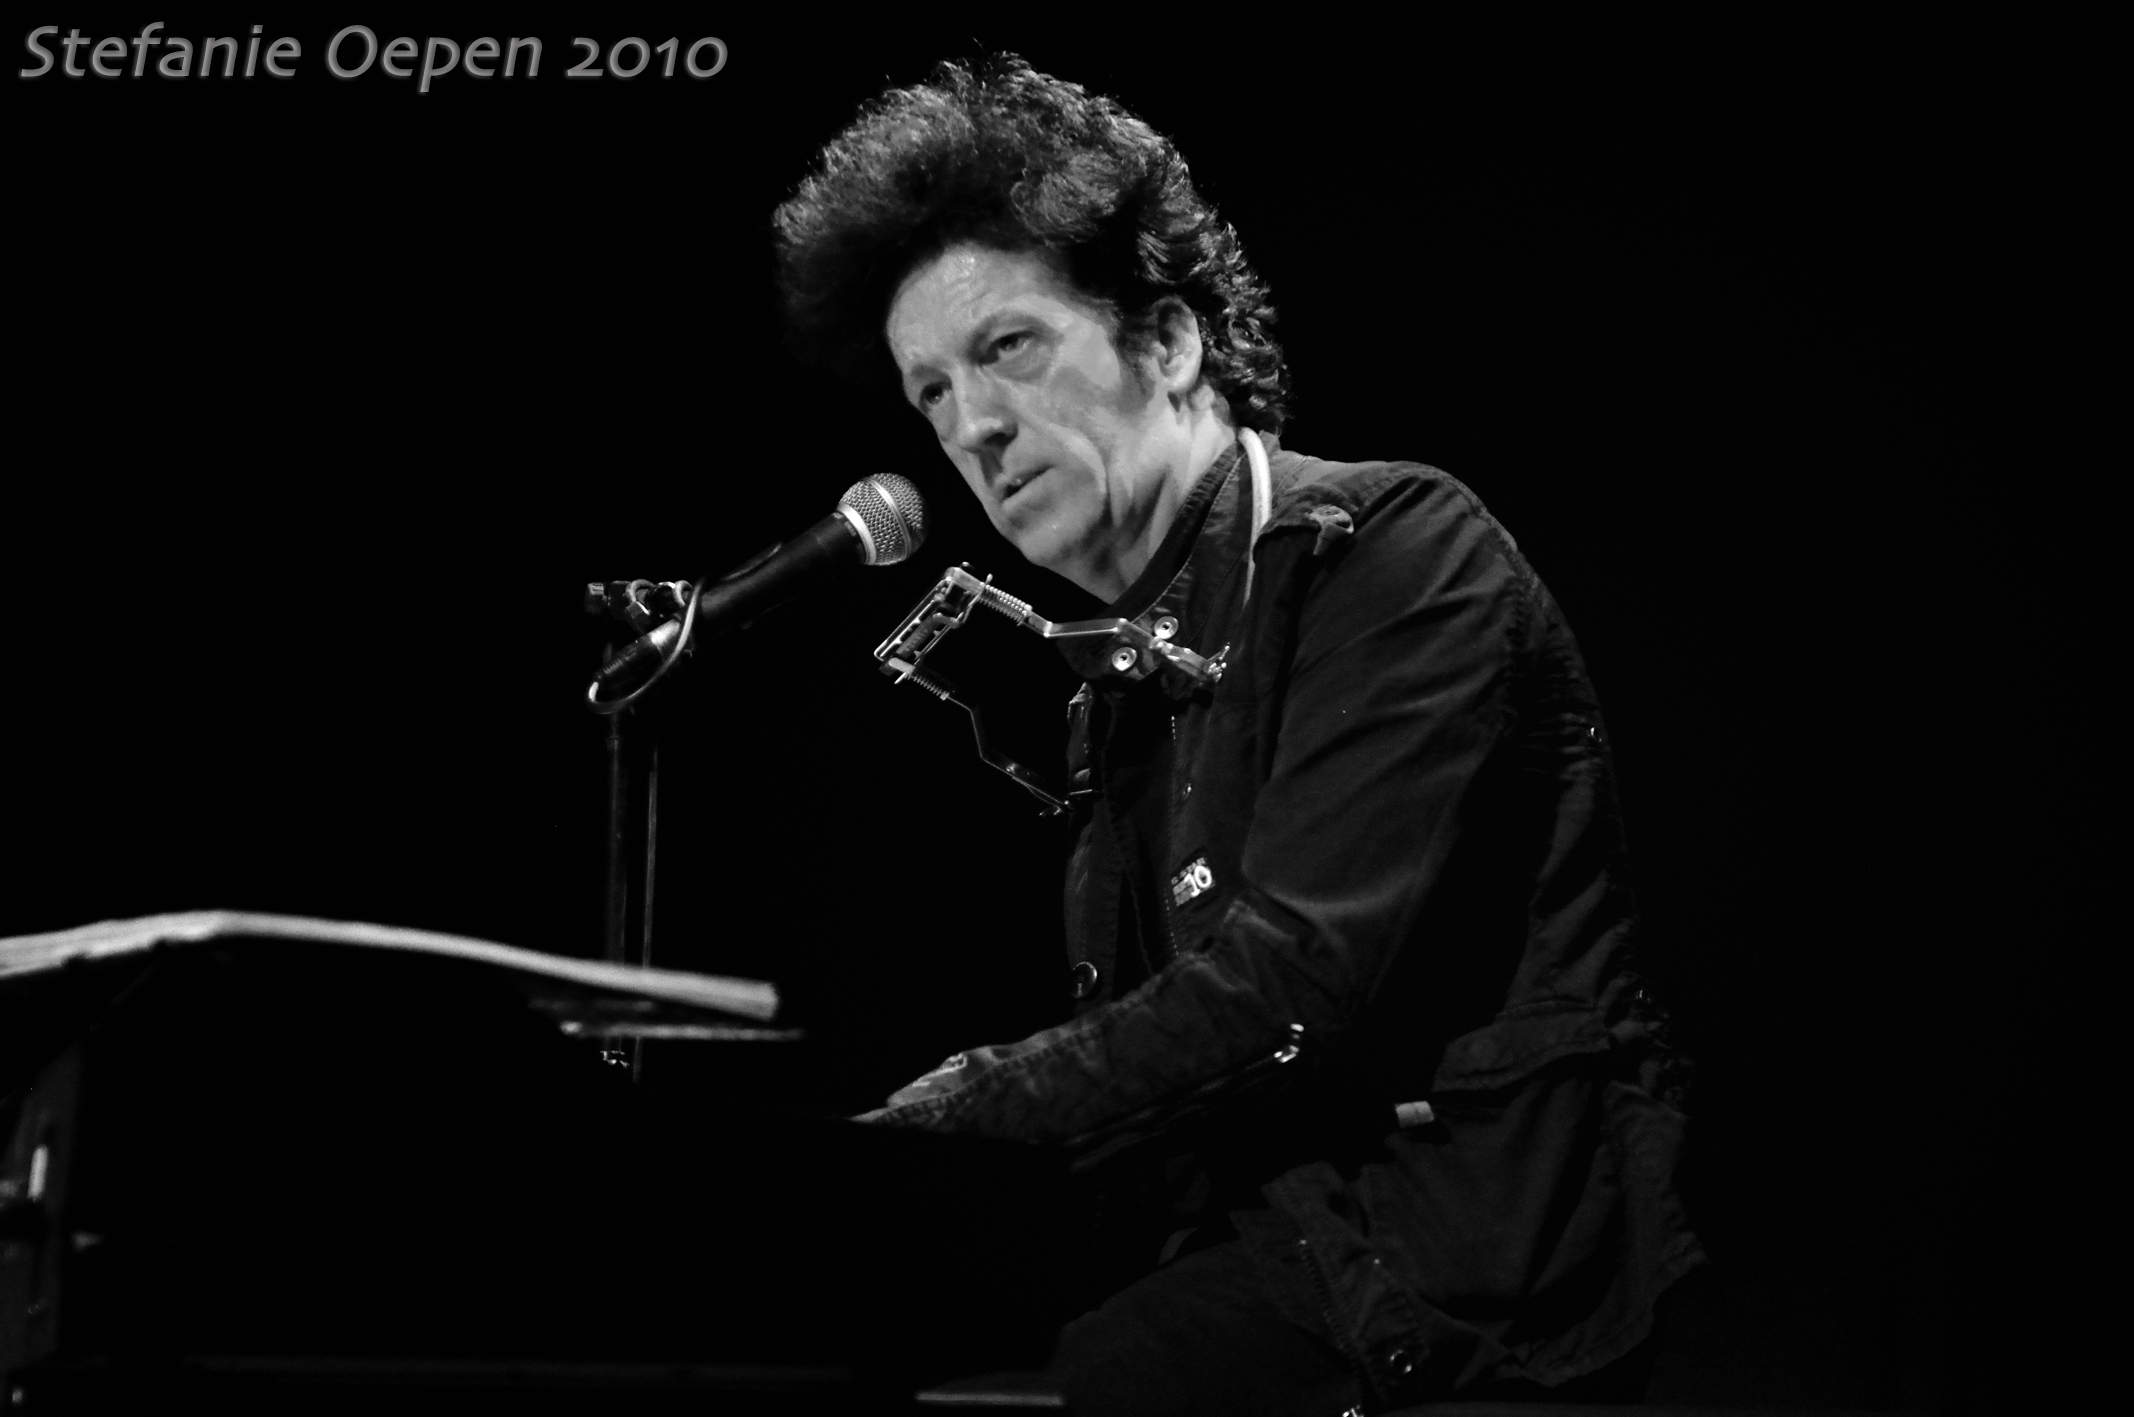 Willie Nile; Light of Day Germany 2010